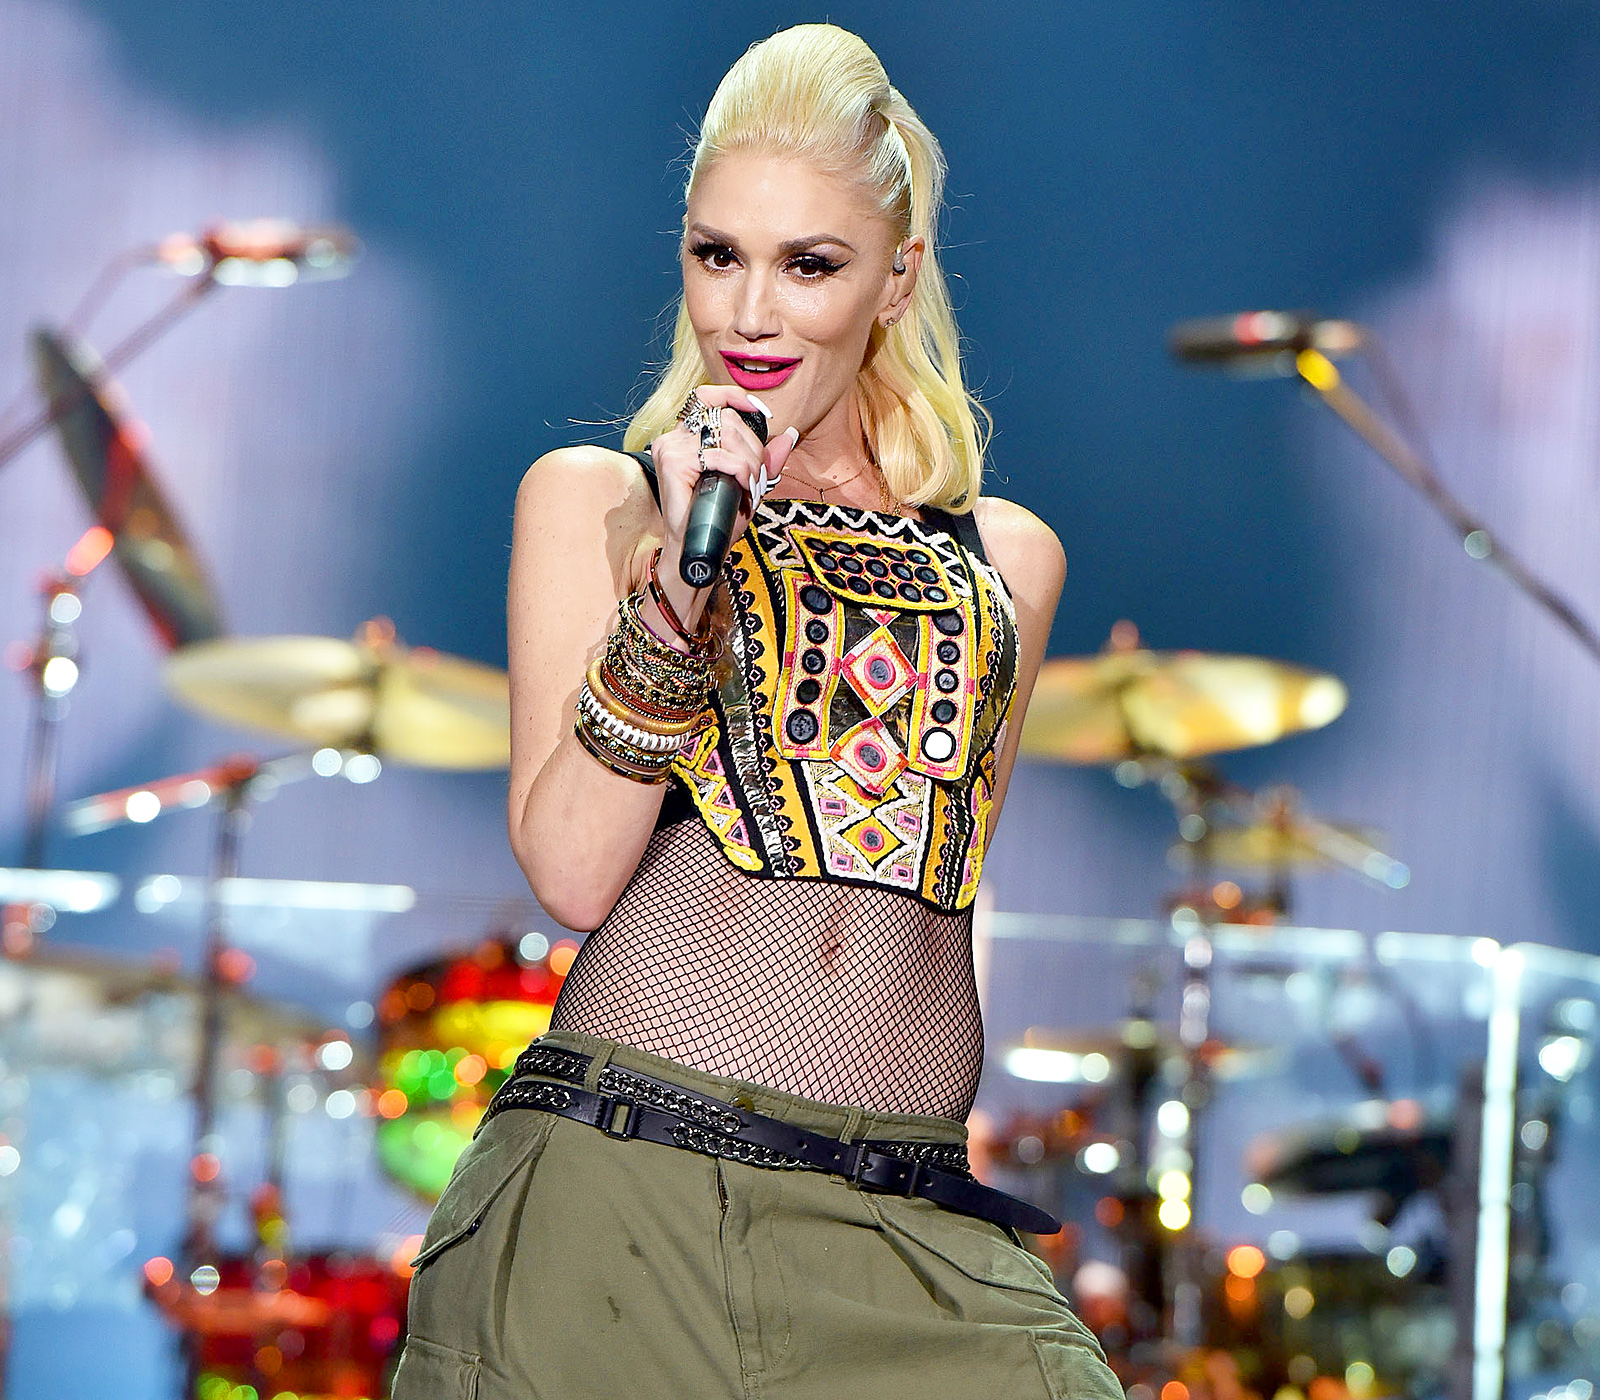 Watch out Vegas! Gwen Stefani announces residency dates